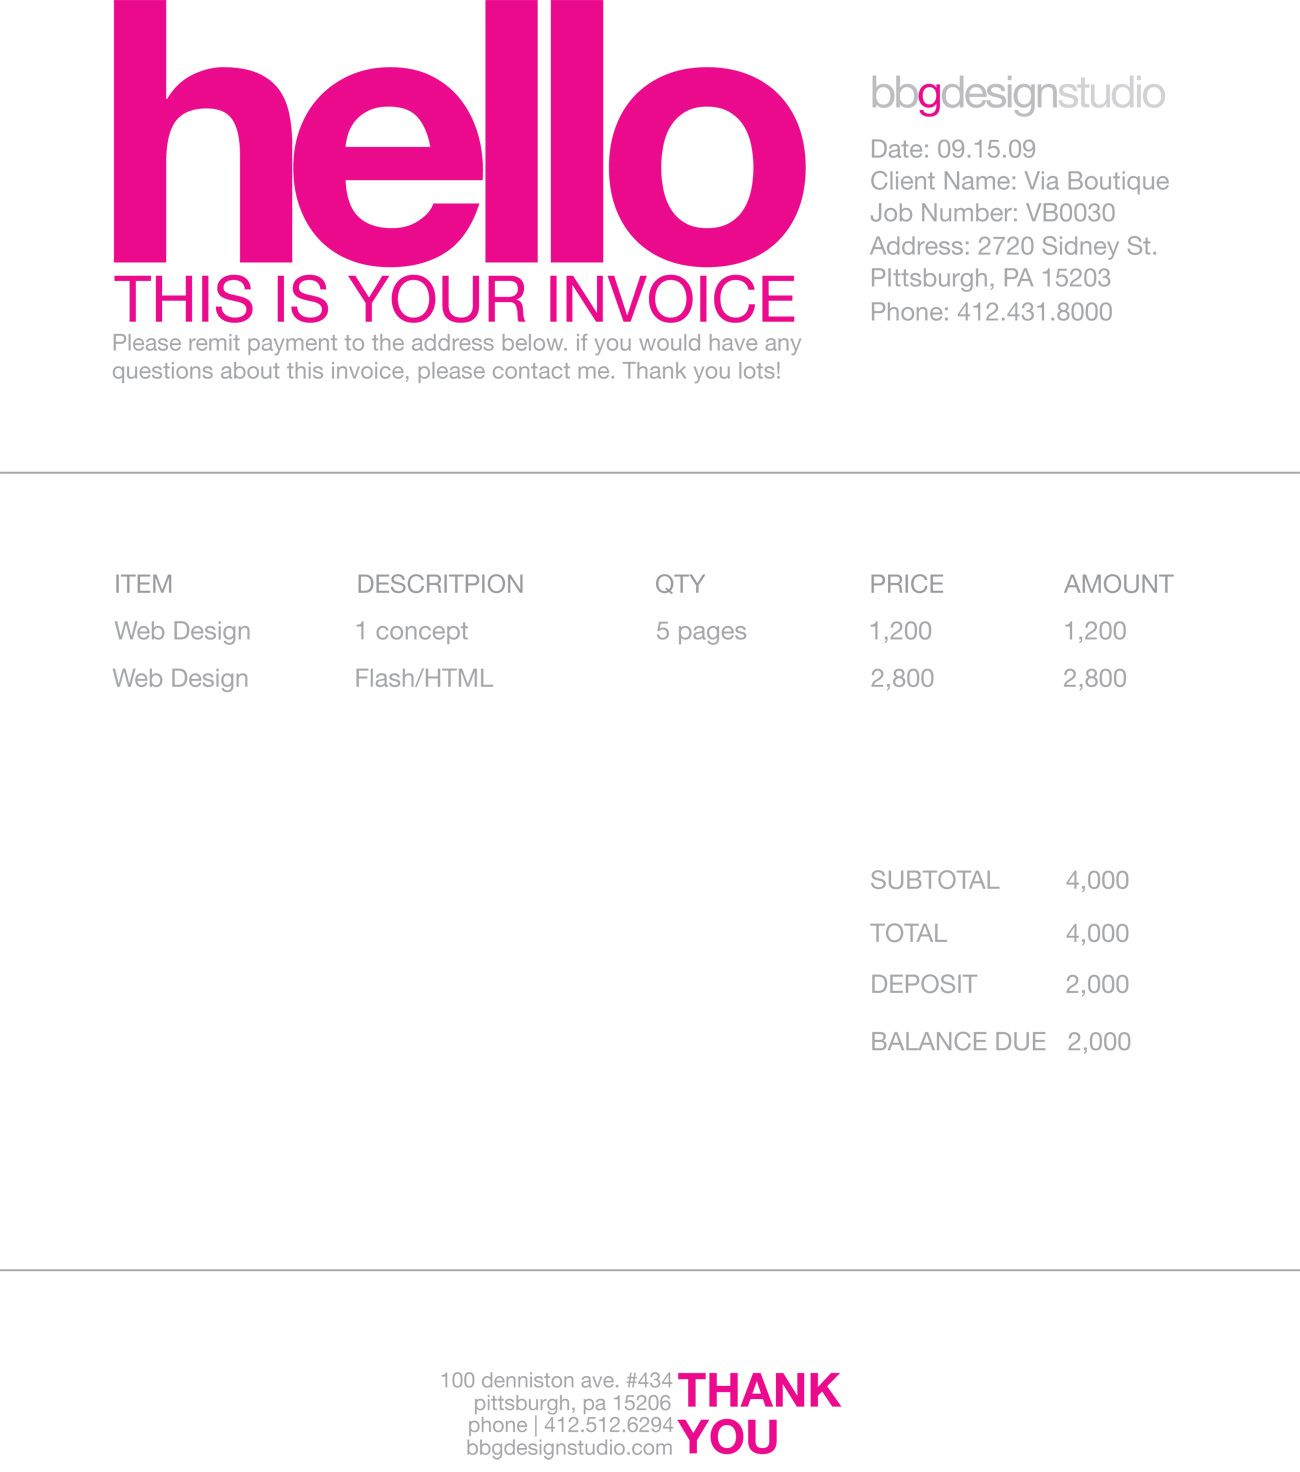 Coachoutletonlineplusus  Mesmerizing  Images About Invoice Design On Pinterest With Fascinating Email Receipt Template Free Besides Cash Cheque Receipt Format Furthermore Slimming World Receipts With Nice Format Of Rent Receipt Also Monthly Rent Receipt In Addition Part Payment Receipt Format And Car Deposit Receipt Template As Well As Catering Receipt Template Additionally Receipt Templates For Word From Pinterestcom With Coachoutletonlineplusus  Fascinating  Images About Invoice Design On Pinterest With Nice Email Receipt Template Free Besides Cash Cheque Receipt Format Furthermore Slimming World Receipts And Mesmerizing Format Of Rent Receipt Also Monthly Rent Receipt In Addition Part Payment Receipt Format From Pinterestcom